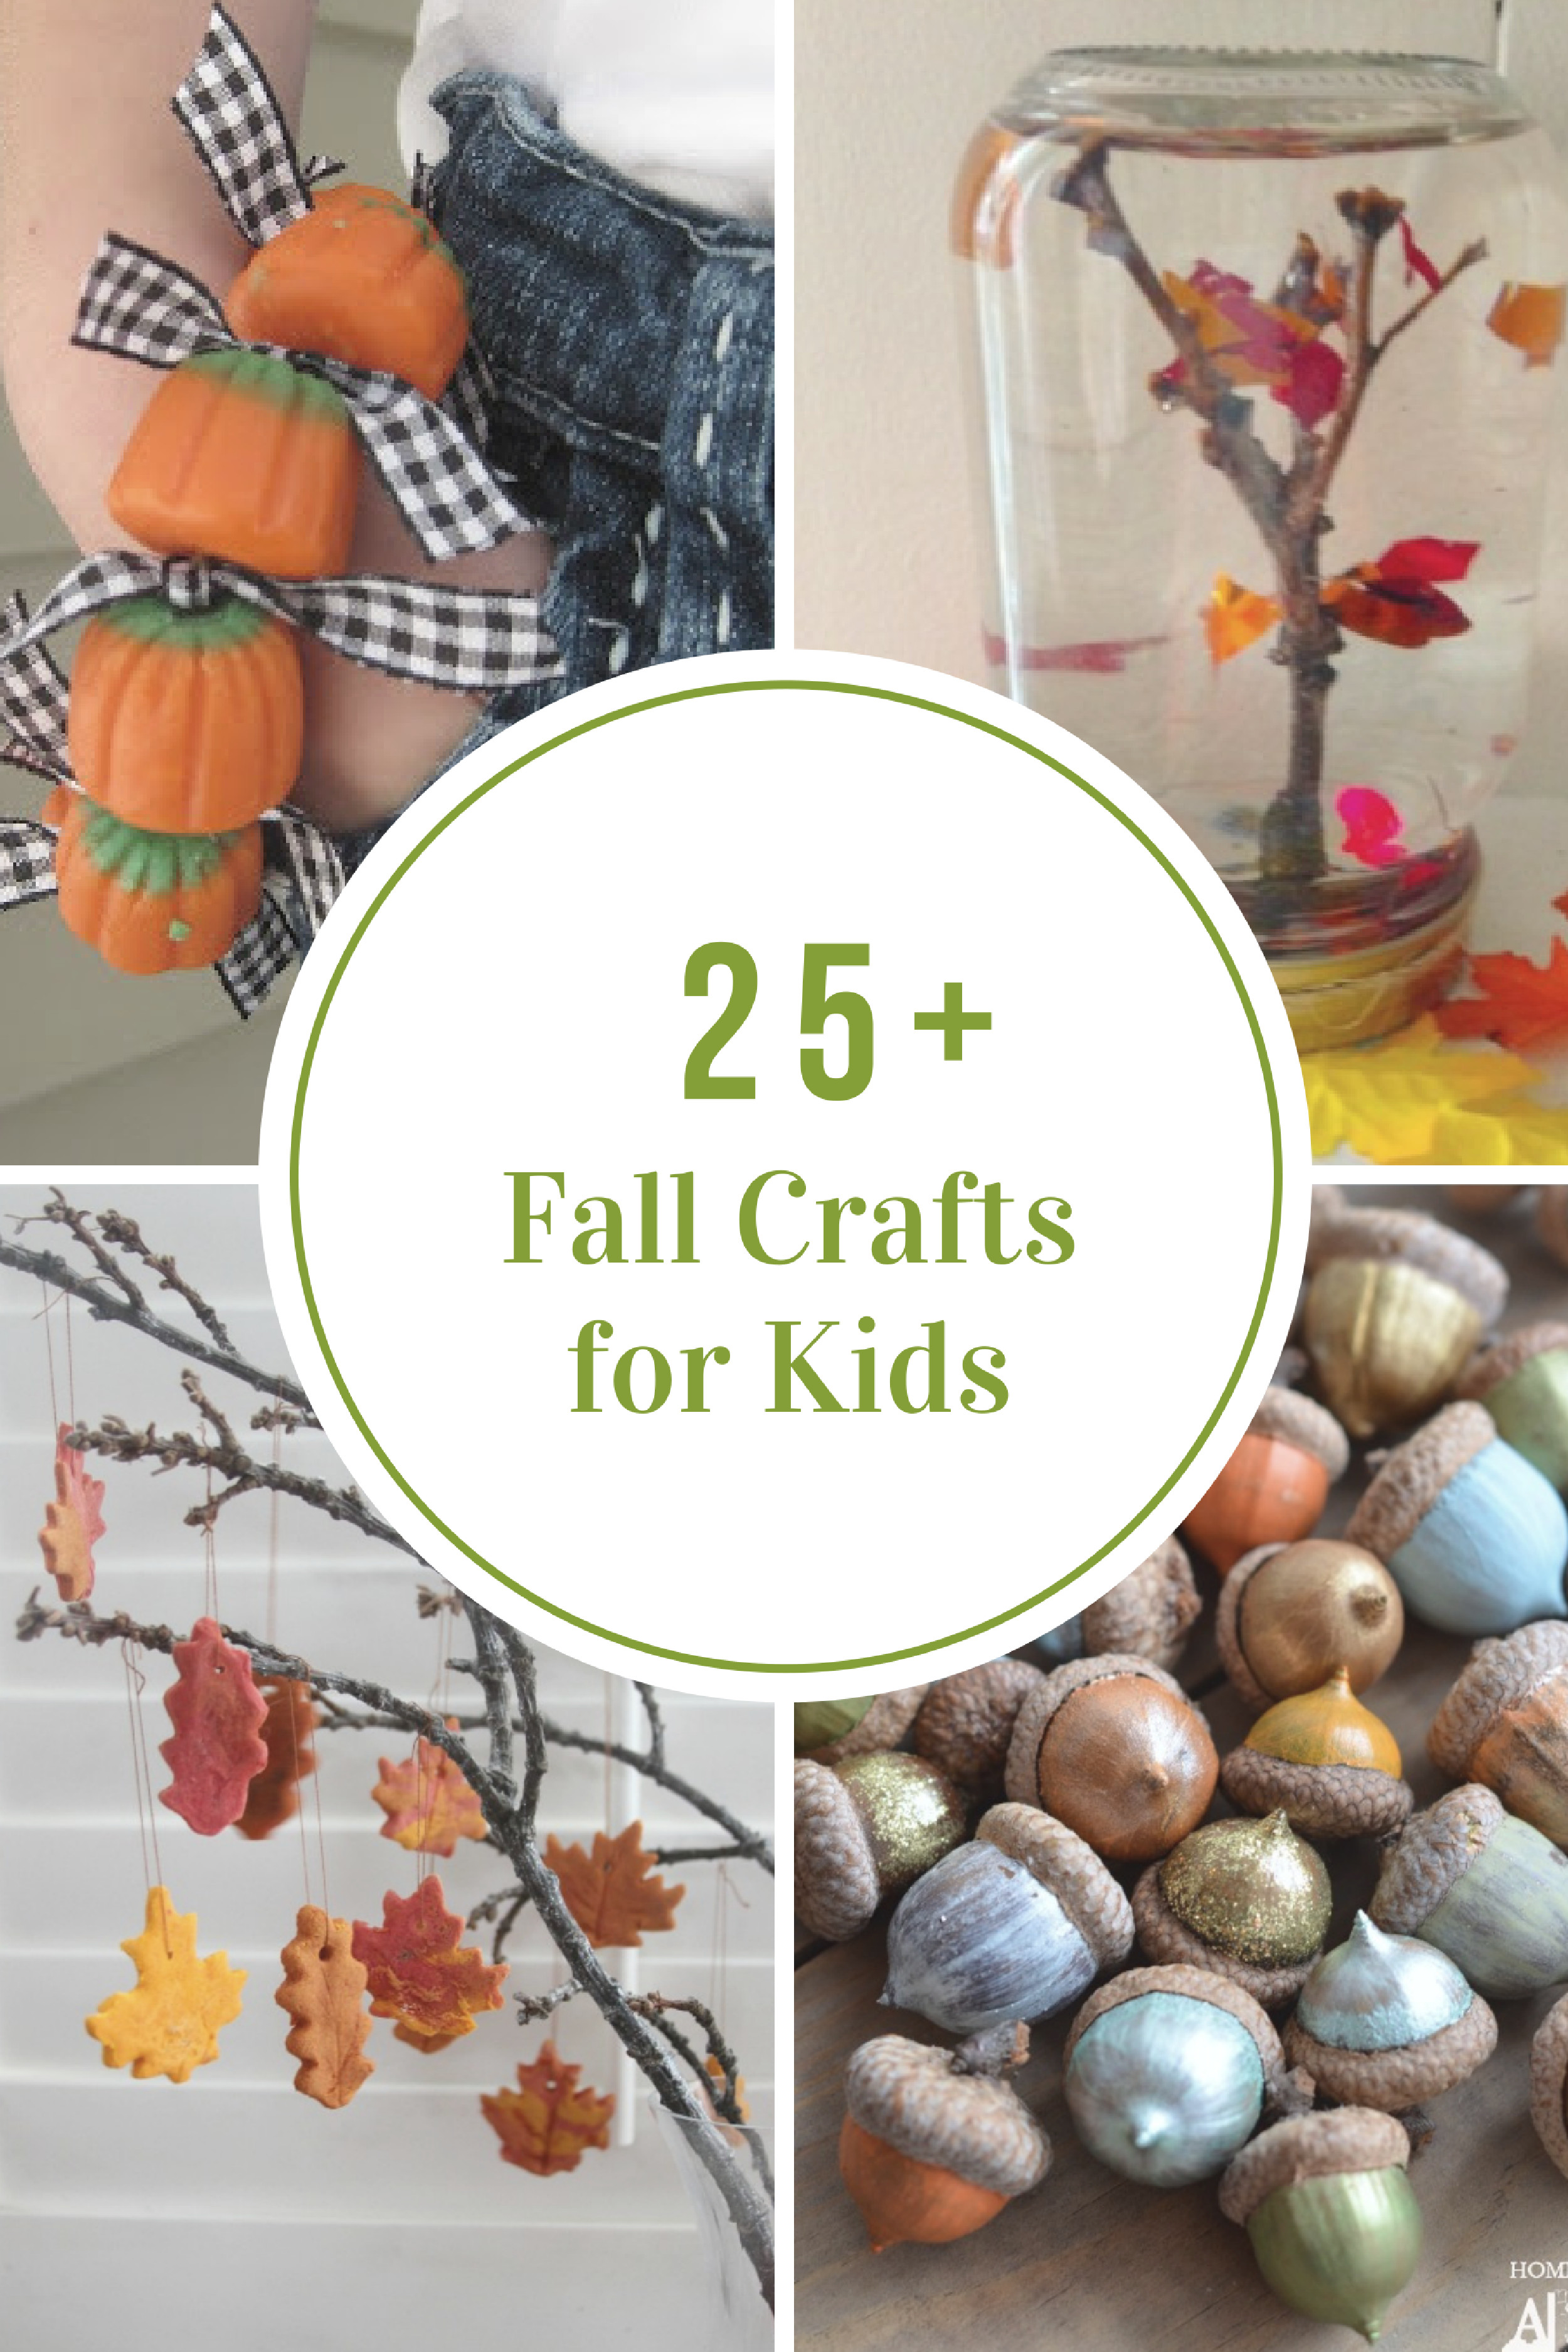 Best ideas about DIY Crafts For Kids . Save or Pin Fall Crafts for Kids The Idea Room Now.